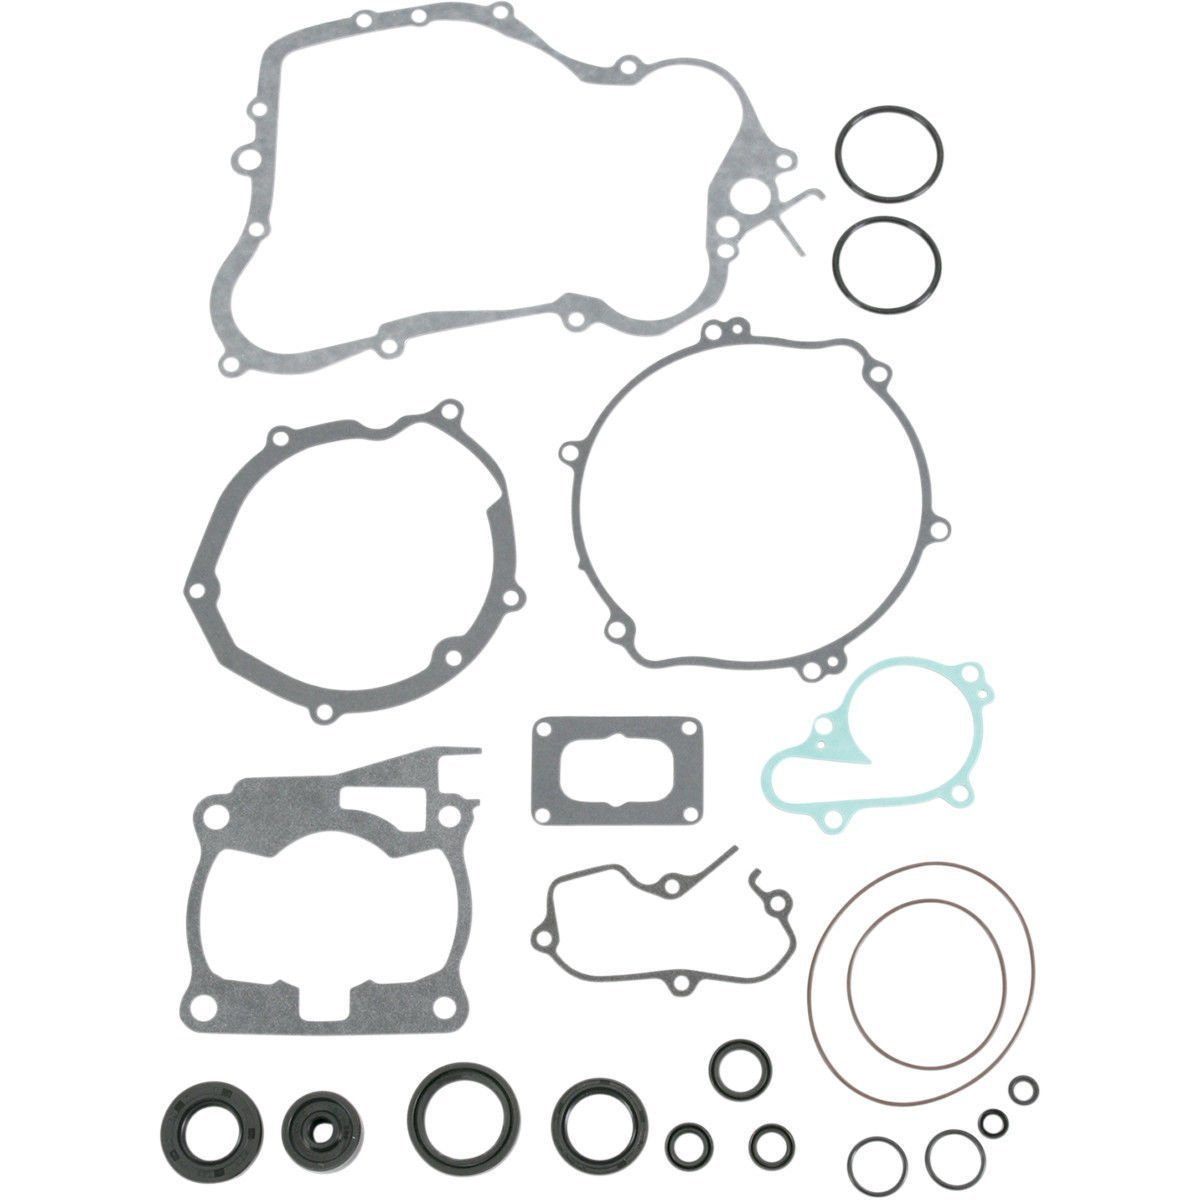 Cheap Yz F, find Yz F deals on line at Alibaba.com